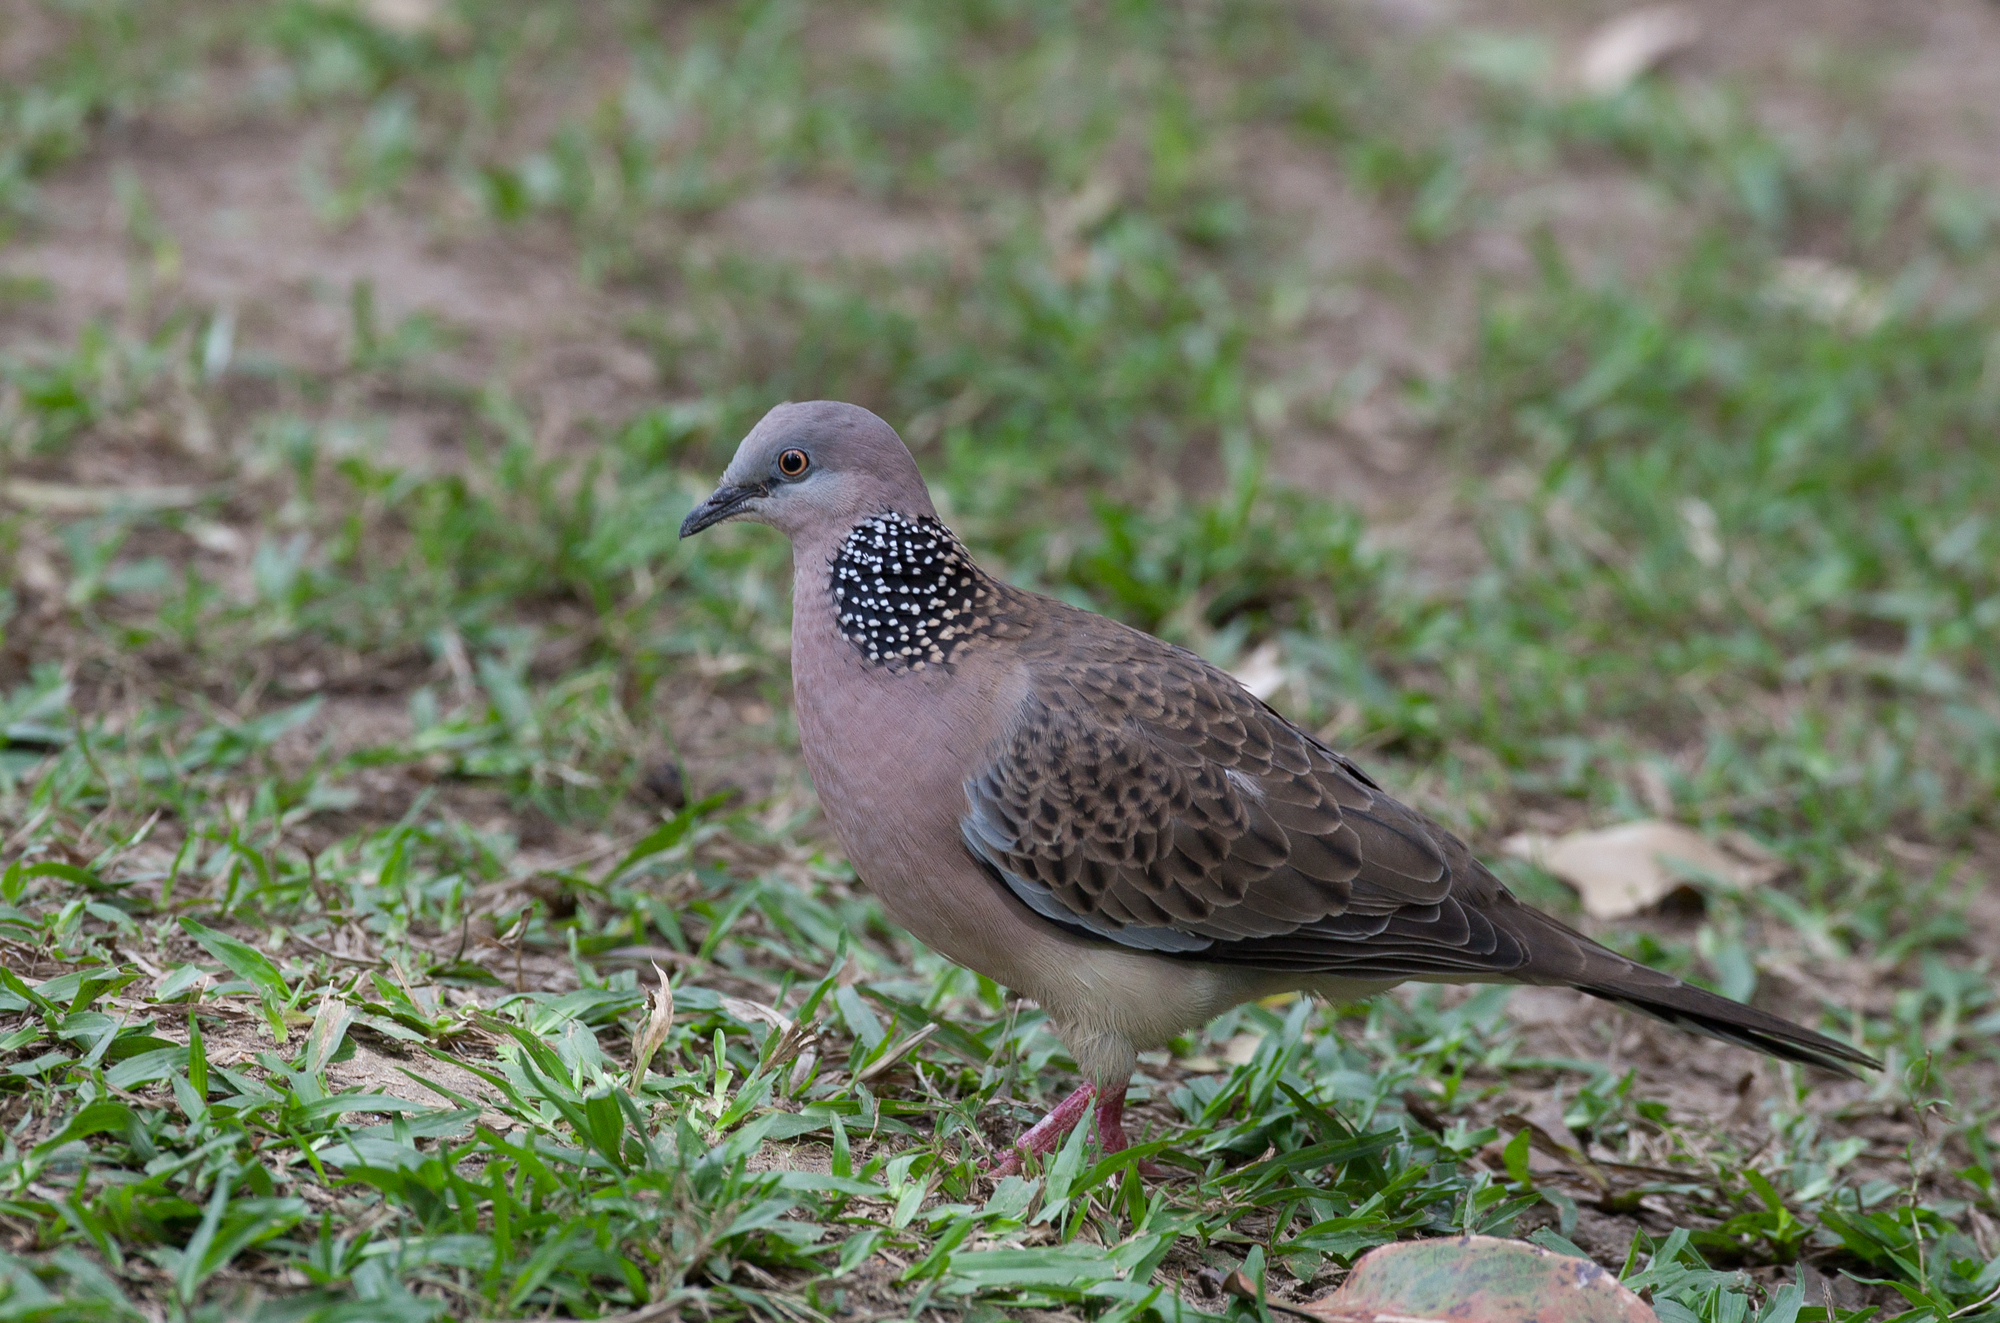 Spotted dove flying - photo#22